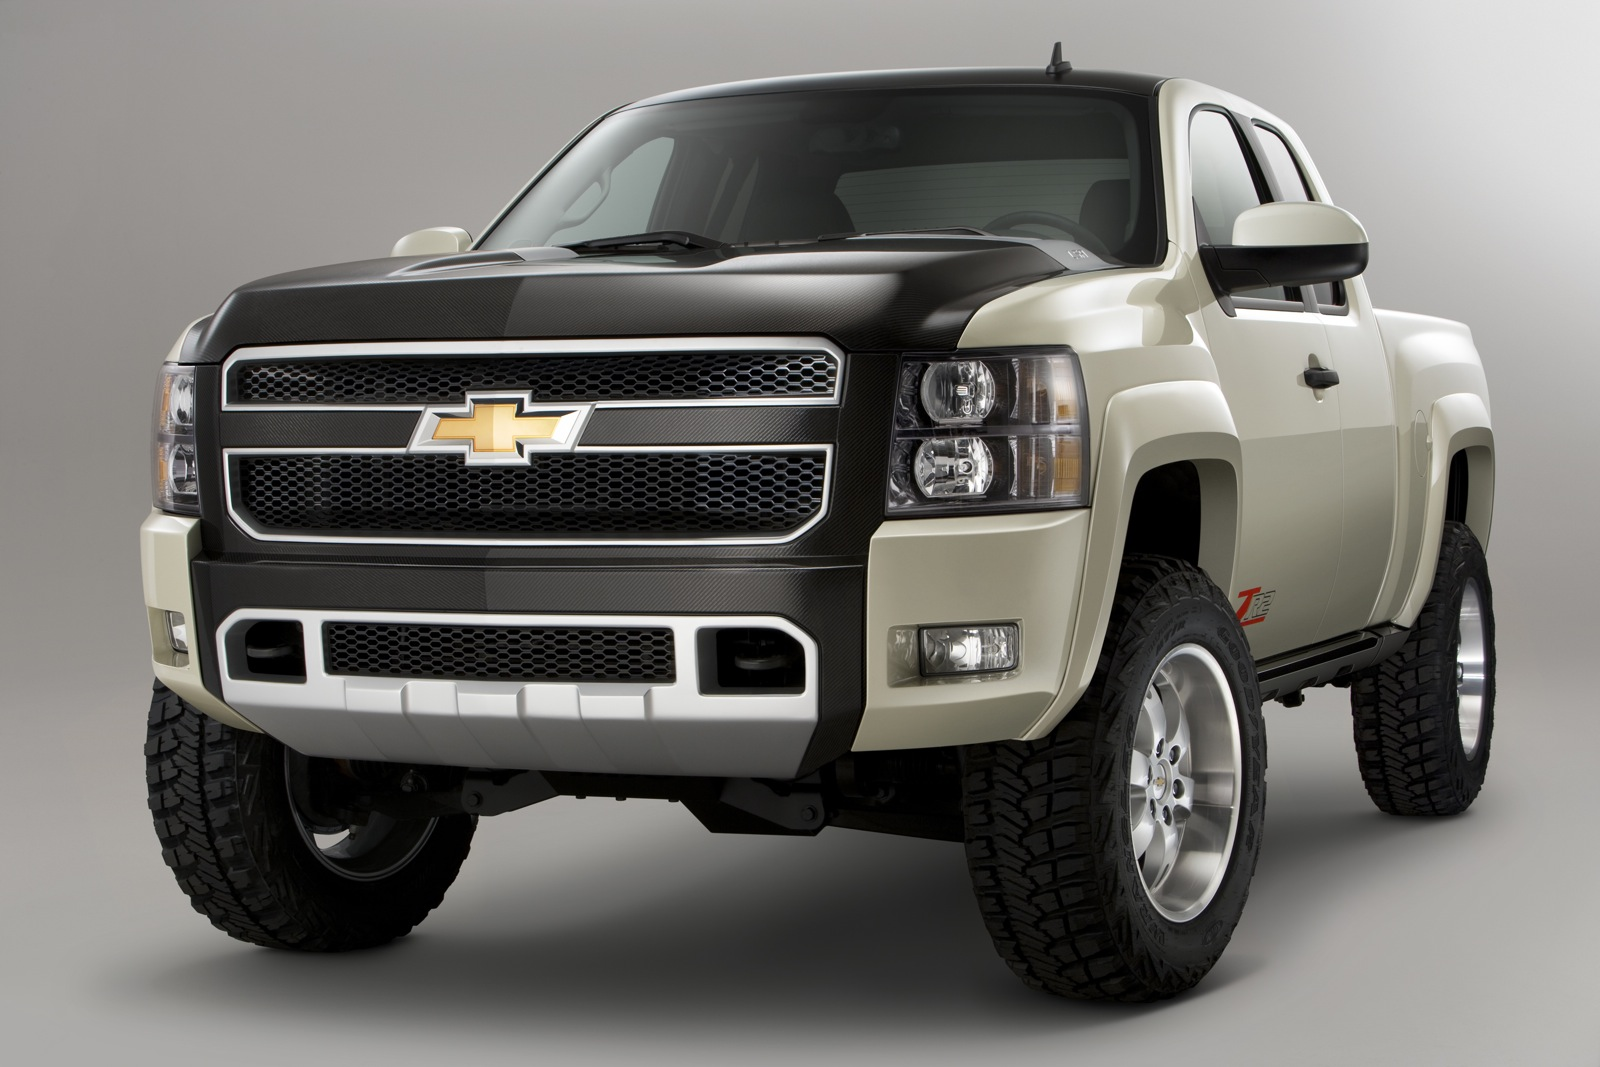 2013 chevrolet silverado. Black Bedroom Furniture Sets. Home Design Ideas